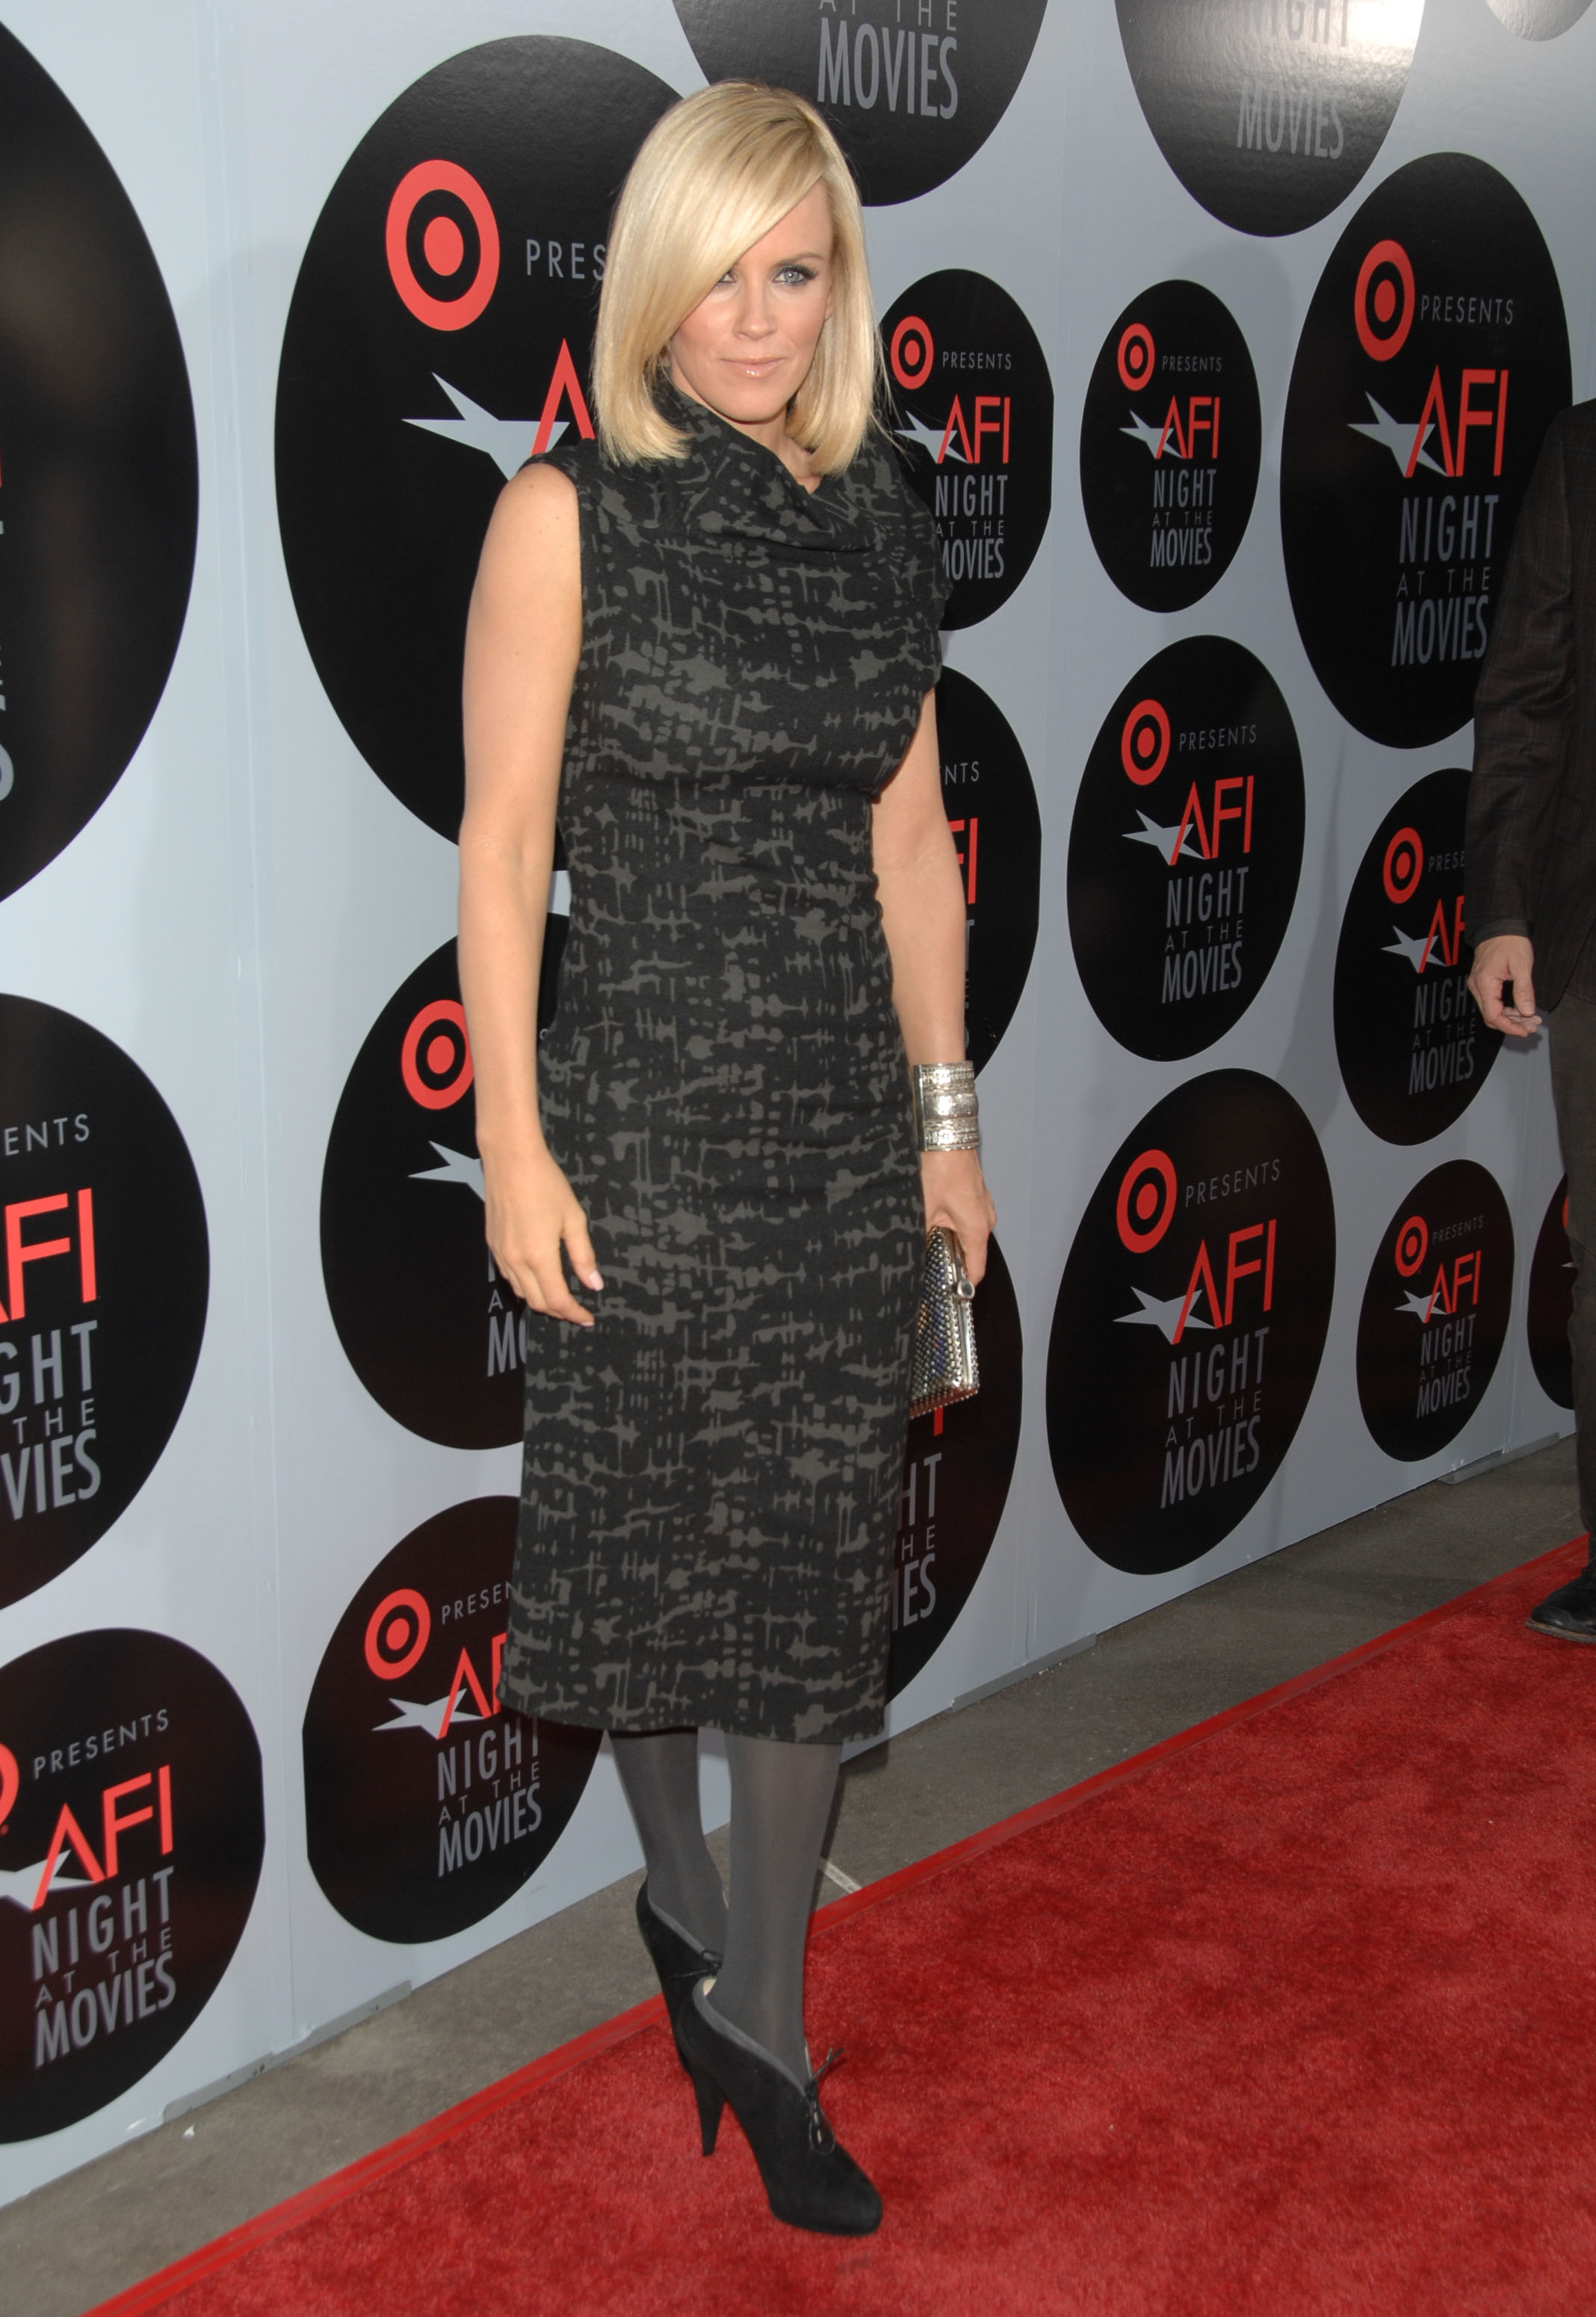 27050_Celebutopia-Jenny_McCarthy-AFI5s_Night_At_The_Movies-04_122_441lo.jpg